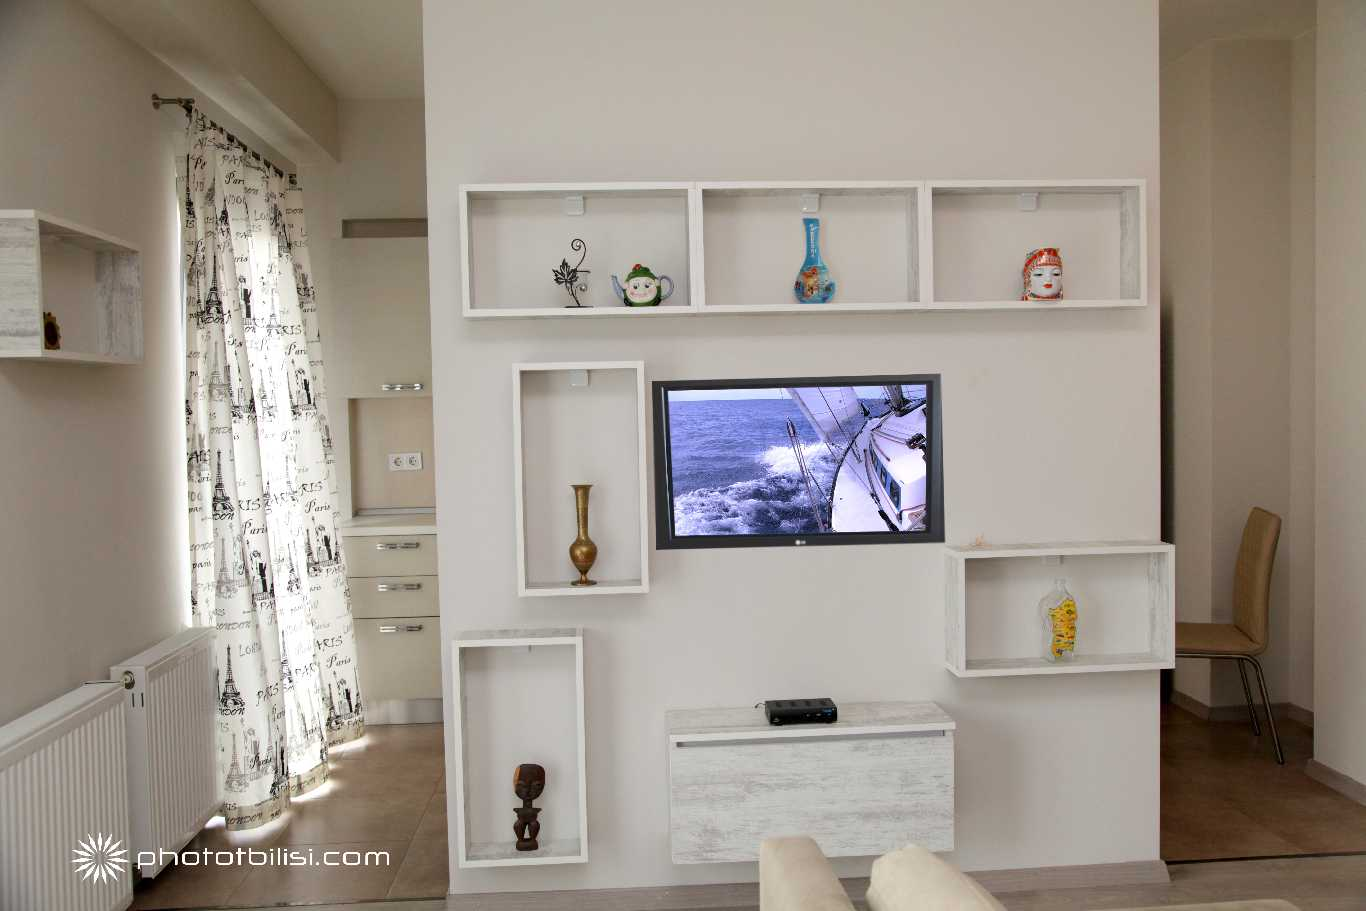 Rent-appartment-in-Tbilisi-IMG_0897-2